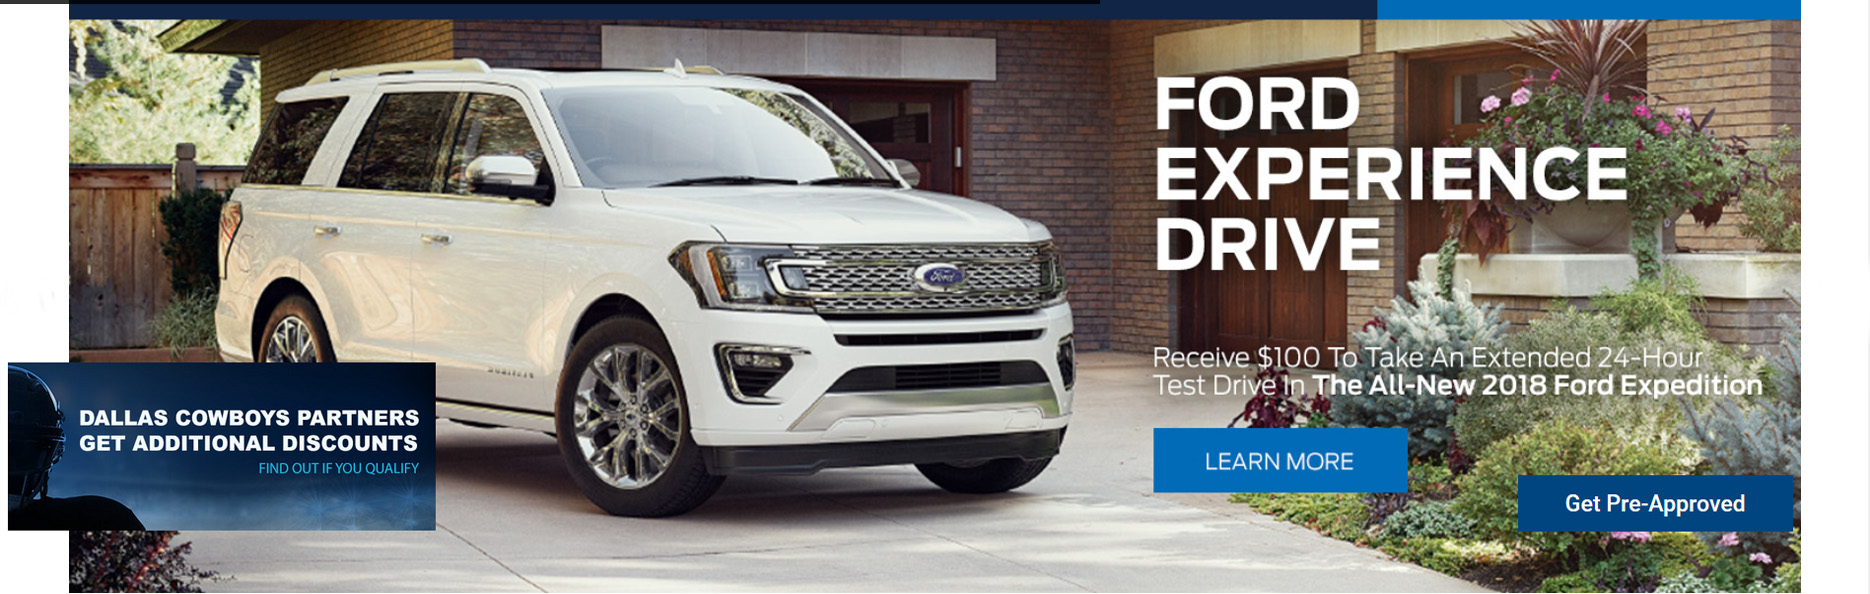 5 Star Ford Plano >> Sam Pack's Five Star Ford of Plano: New & Used Ford Dealership Dallas, DFW, TX